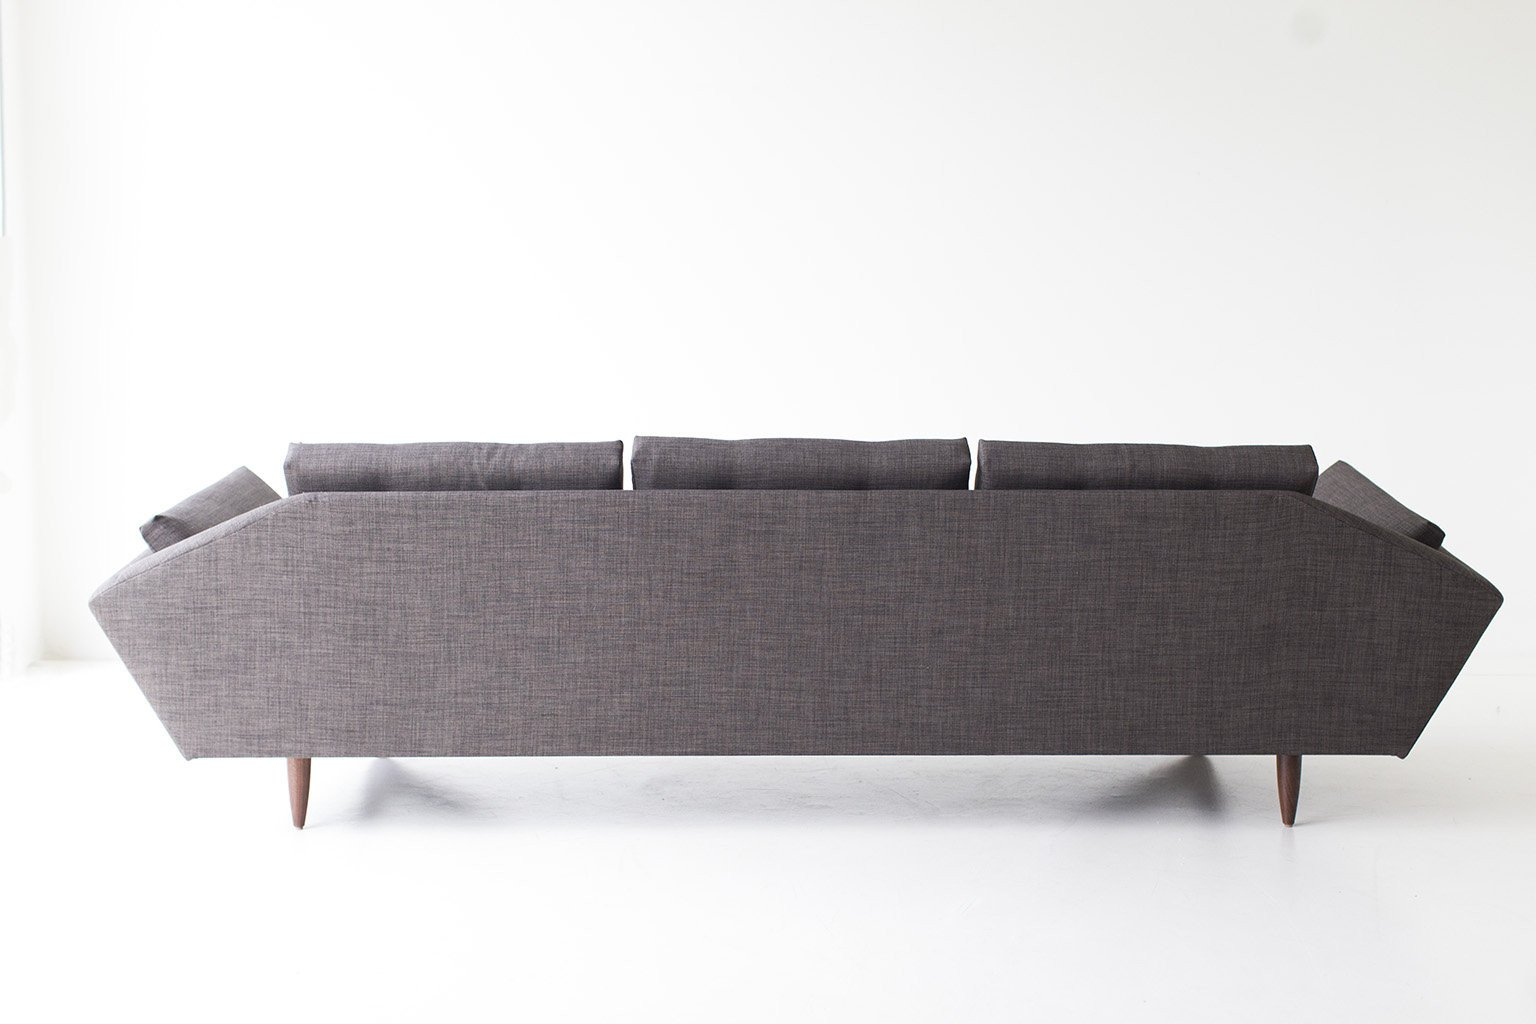 modern-sofa-craft-associates-modern-jetson-sofa-1404-02.jpg